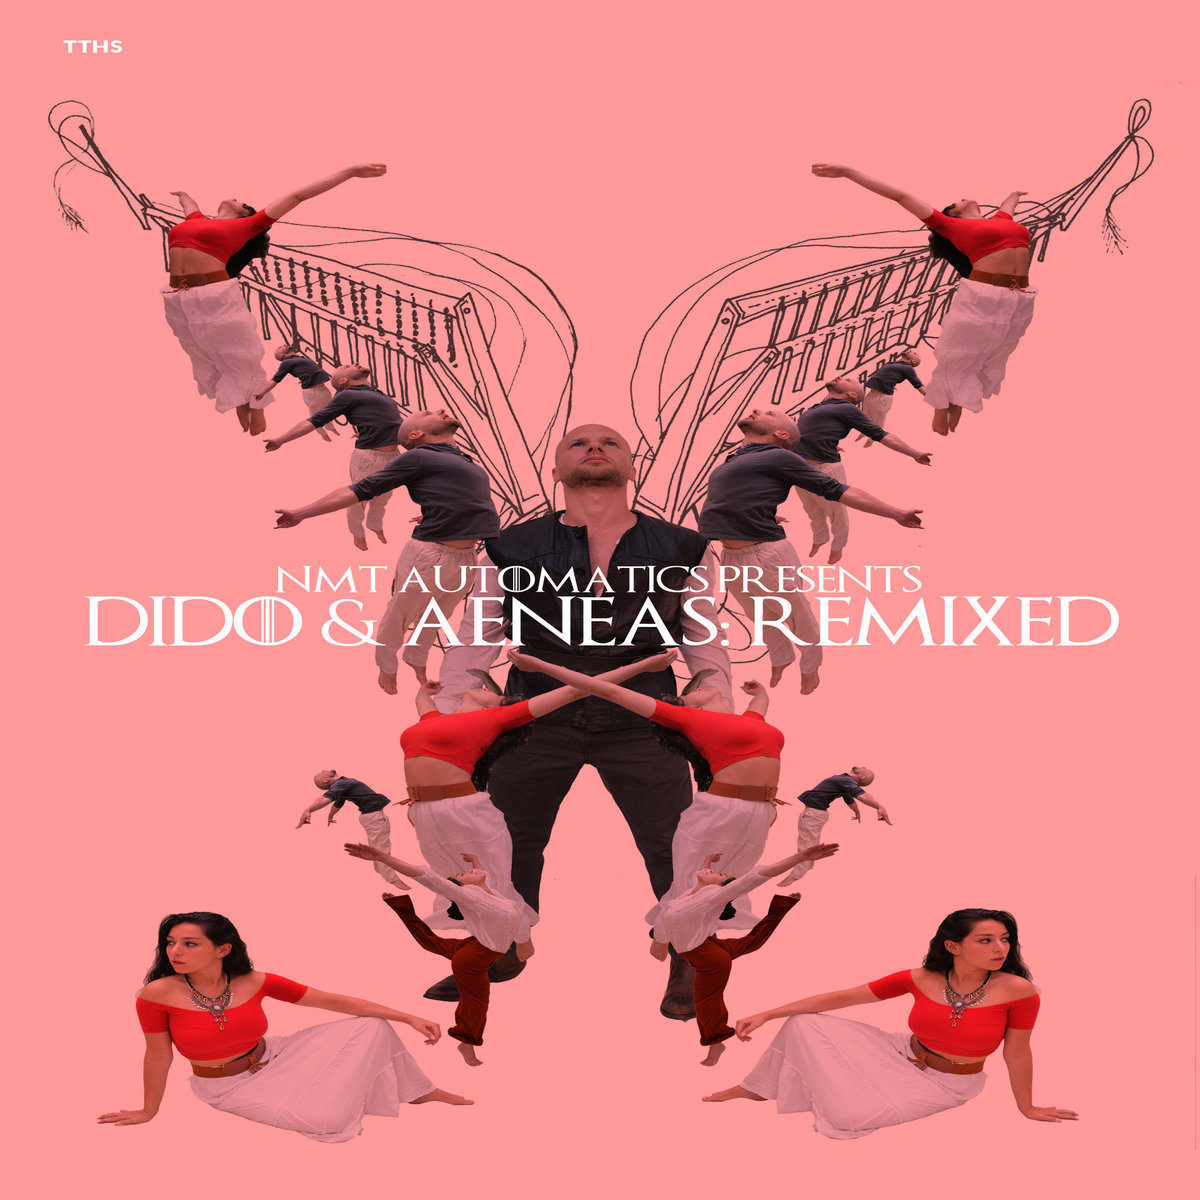 Dido & Aeneas: Remixed